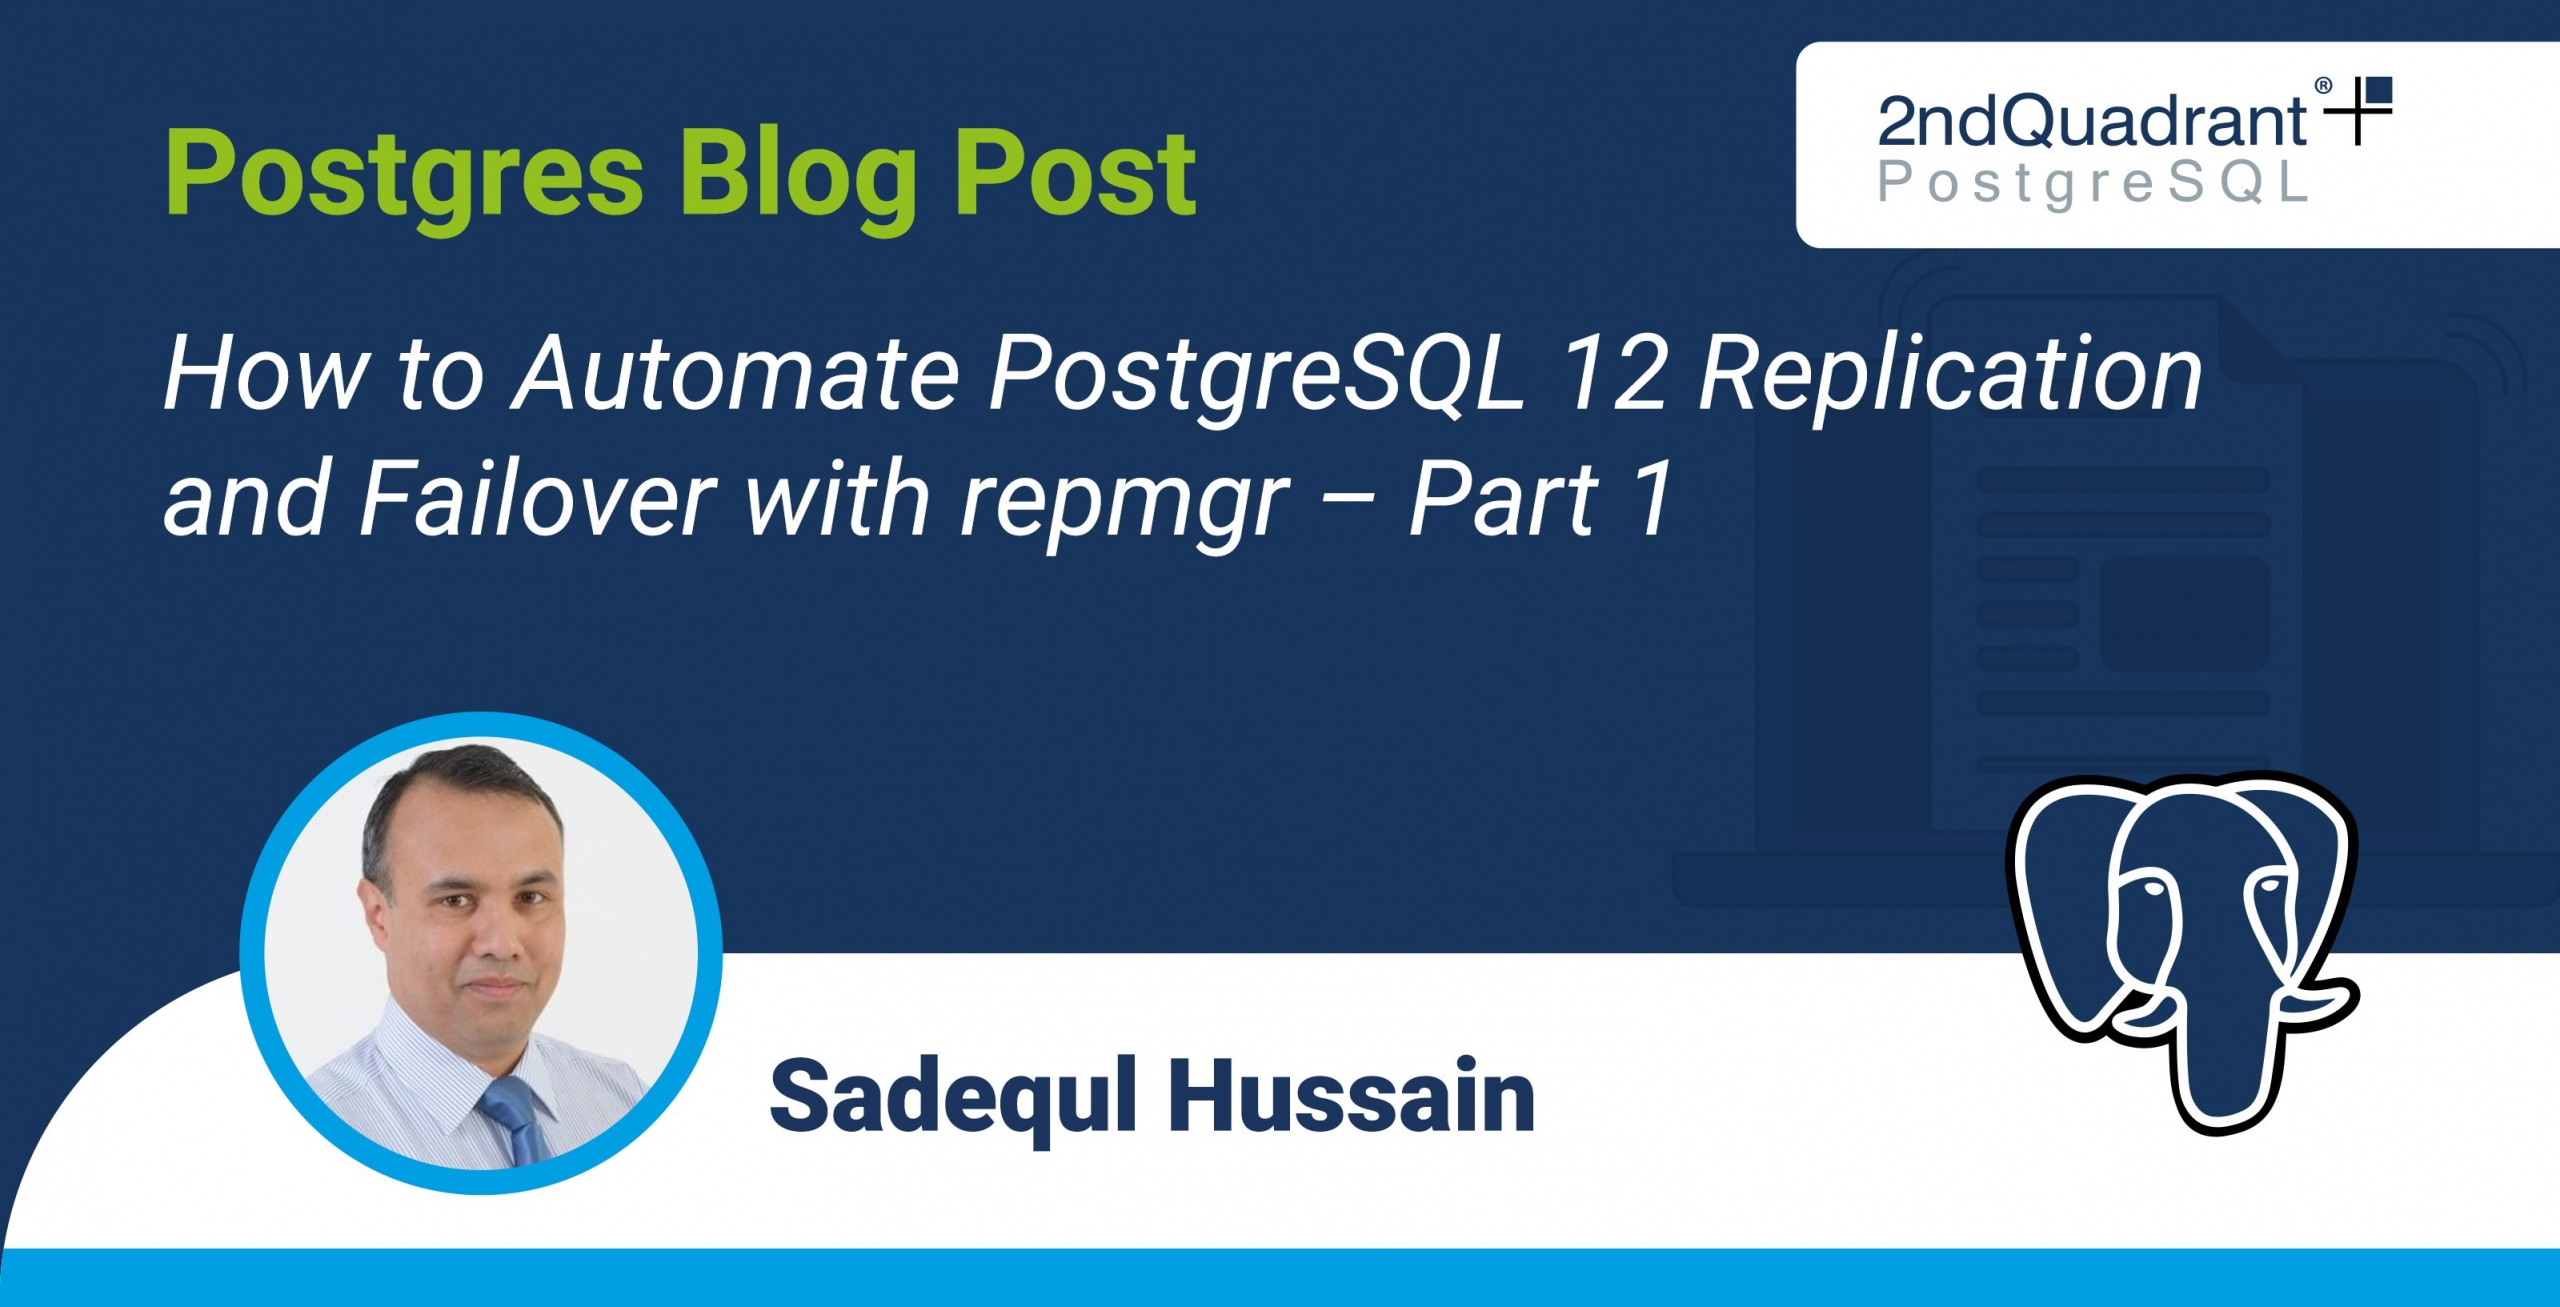 How to Automate PostgreSQL 12 Replication and Failover with repmgr – Part 1